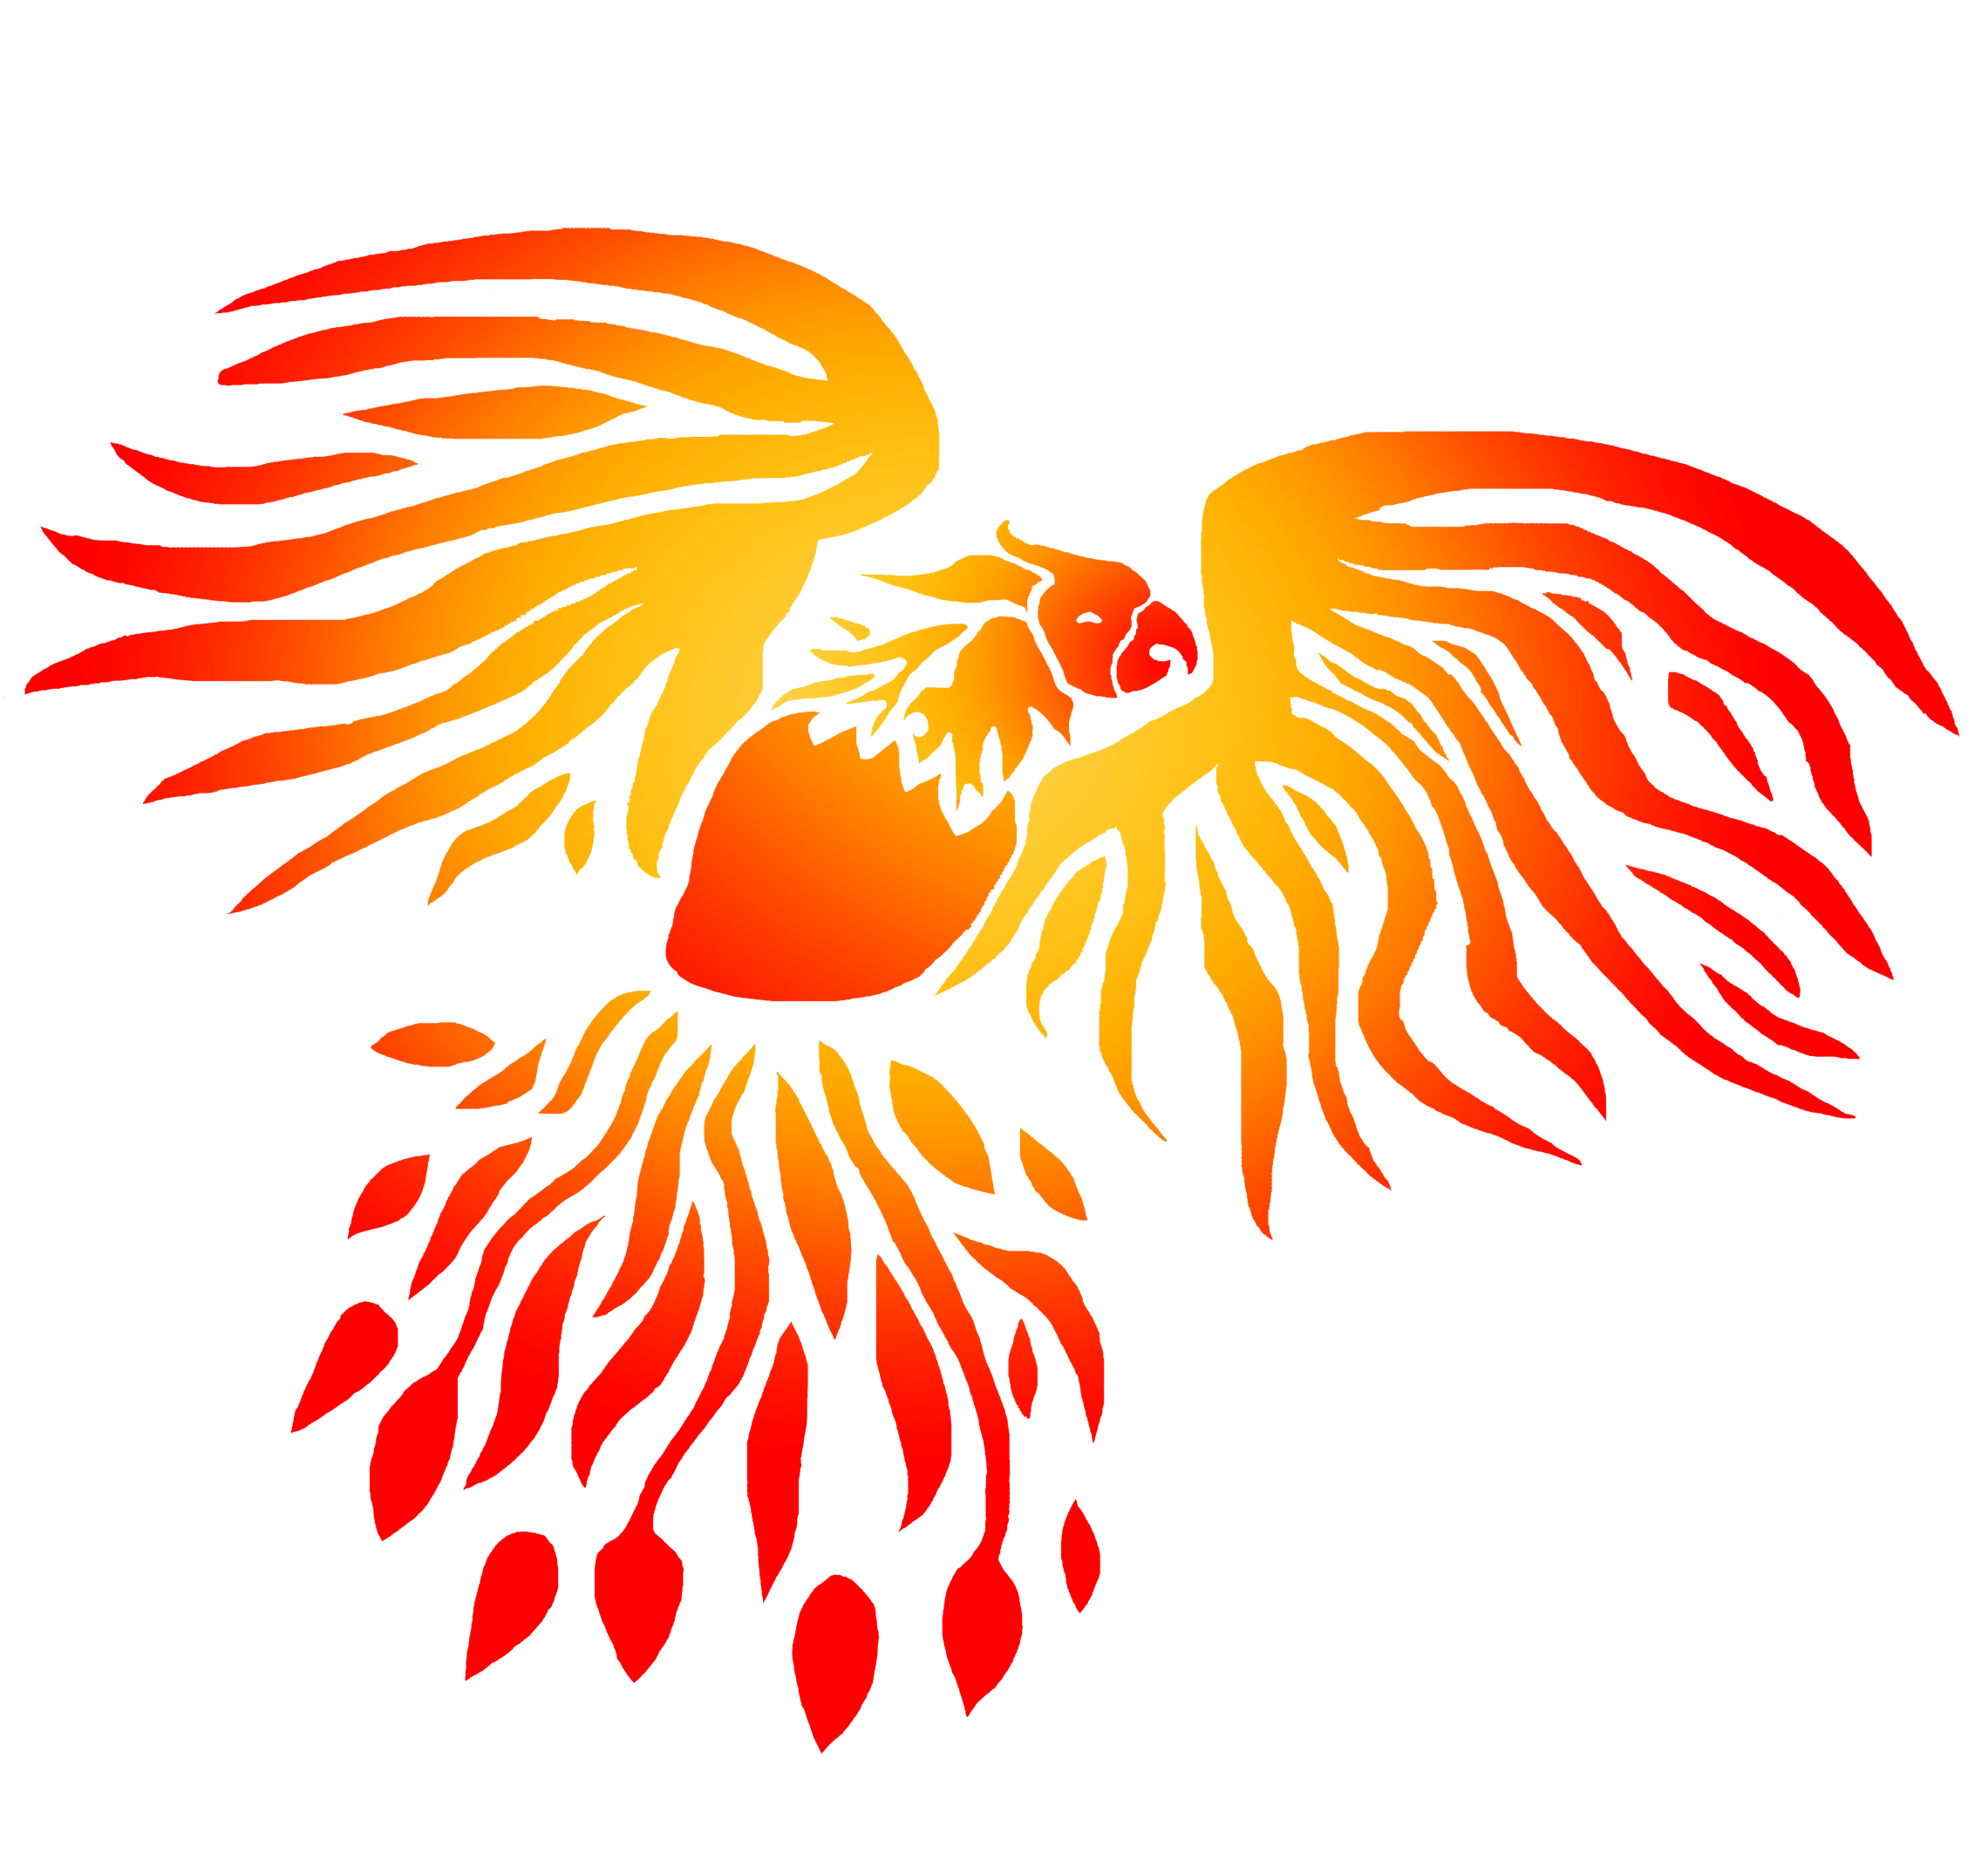 The Phoenix is Watching